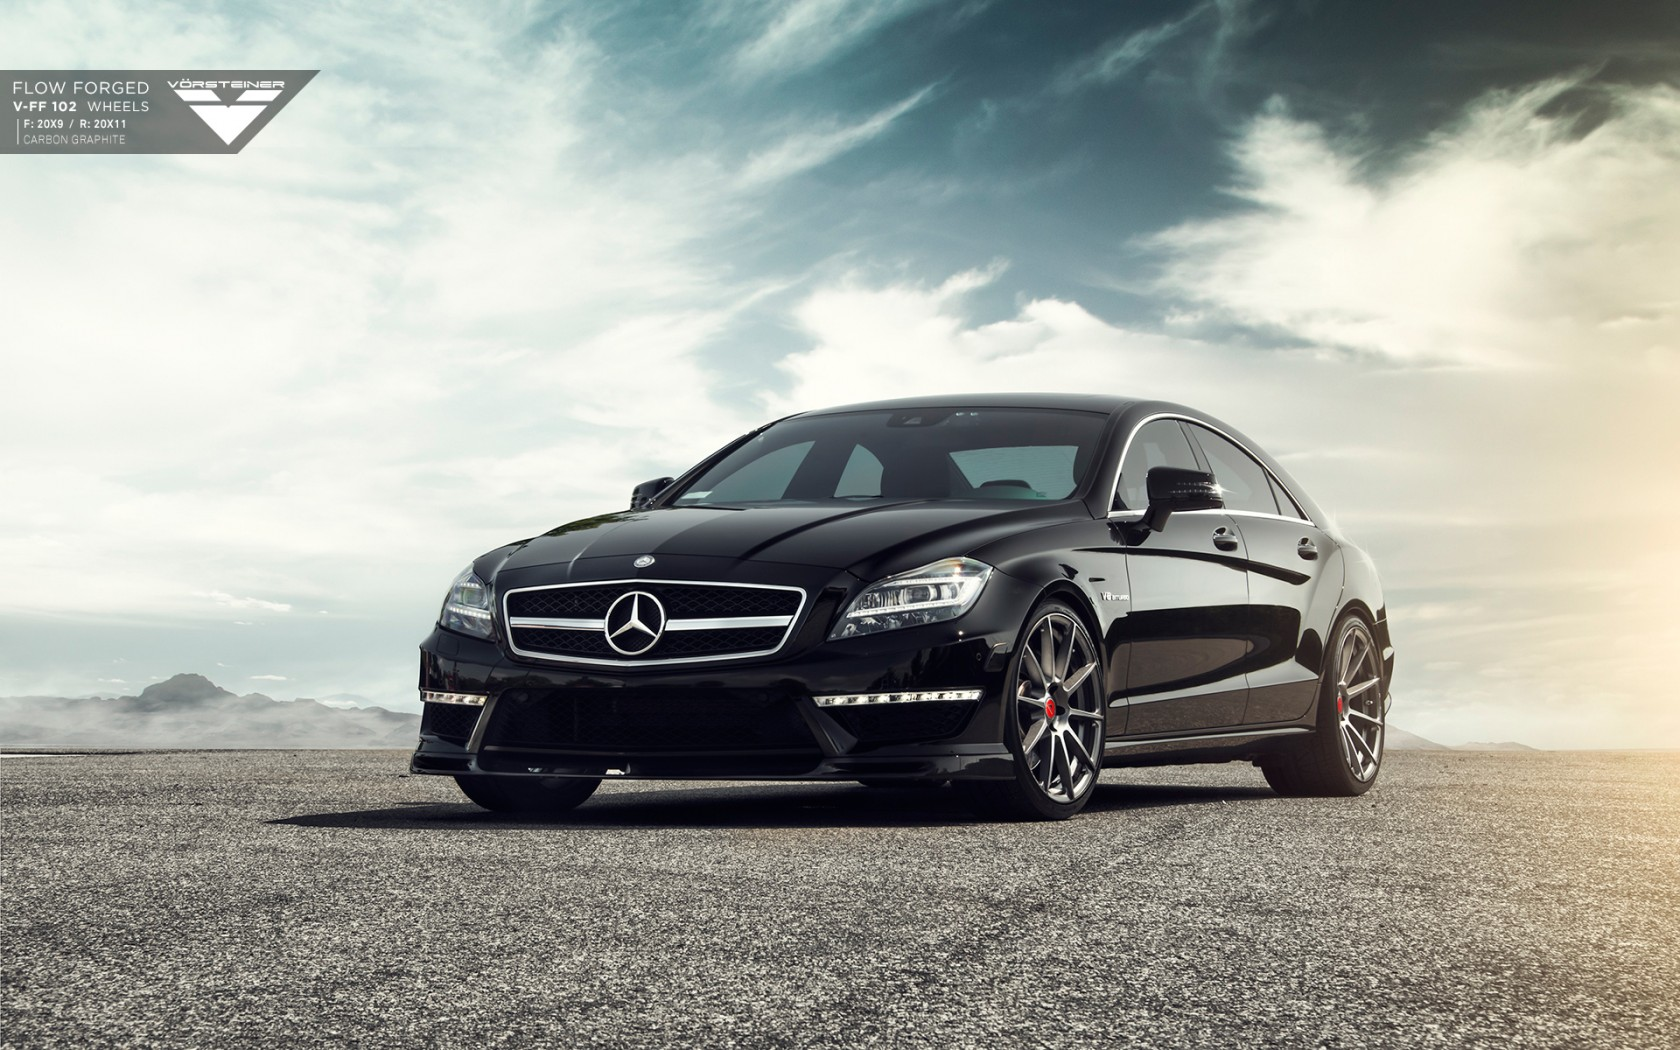 Mercedes Benz CLS63 AMG Vorsteiner Wallpaper | HD Car ...